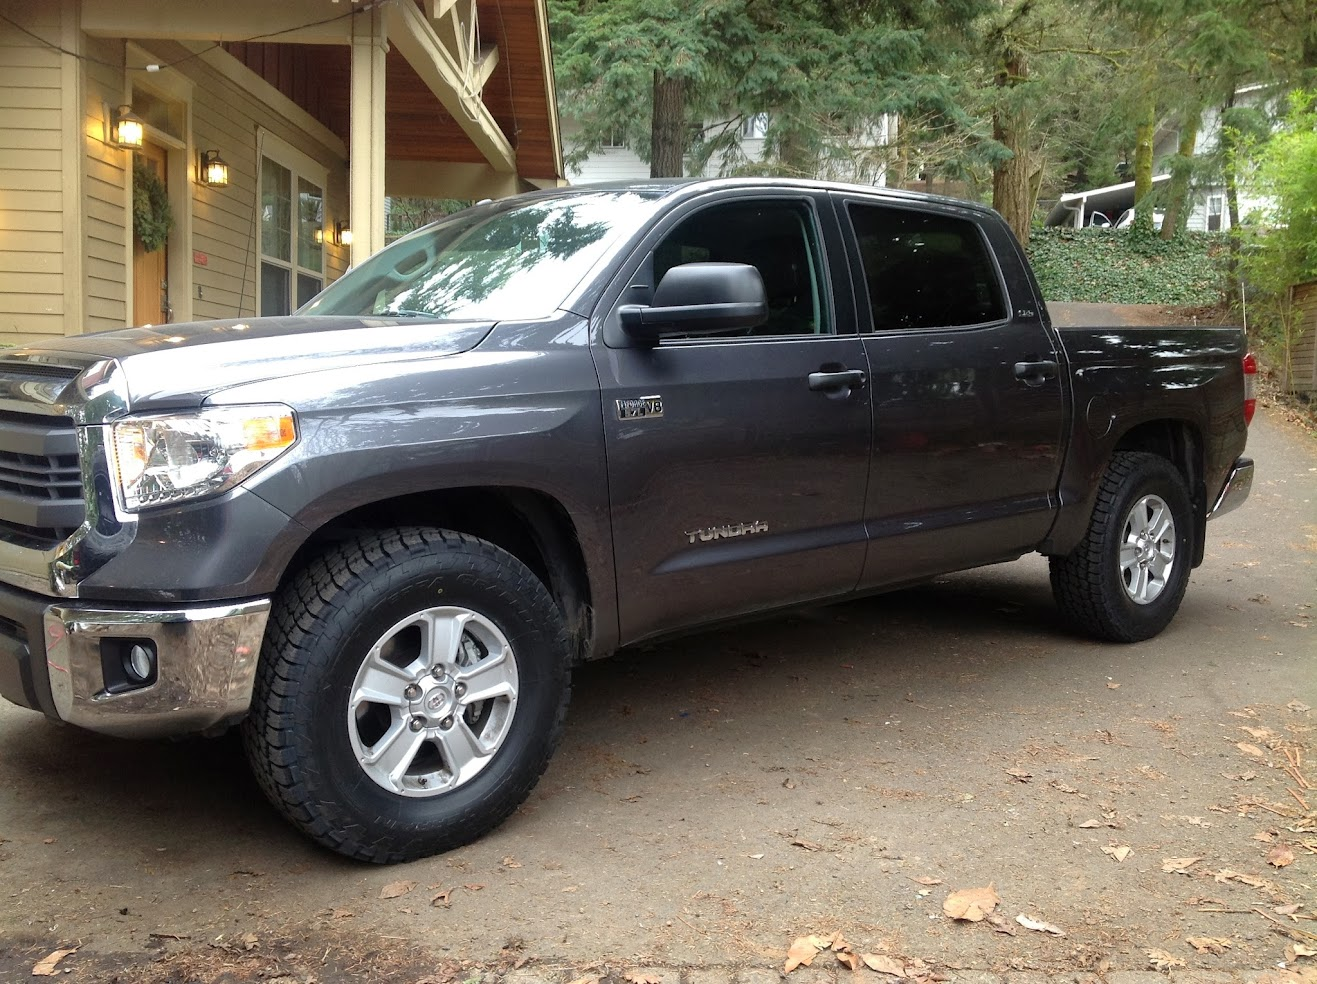 Biggest tire on stock 2014 trd wheels tundratalk net toyota tundra discussion forum